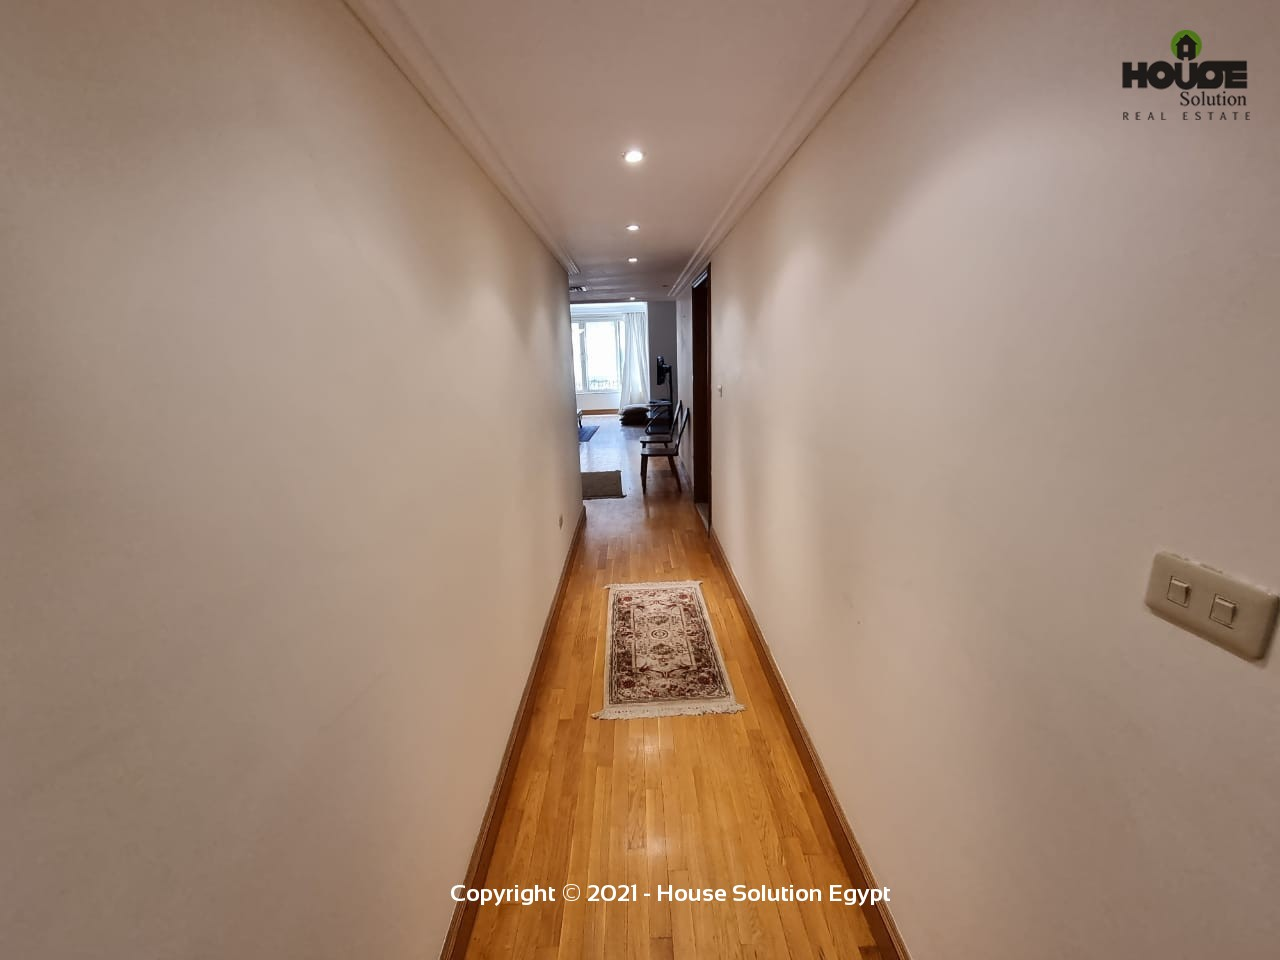 Sunny Furnished Apartment For Rent In Degla El Maadi Cairo - 4896 Featured Image